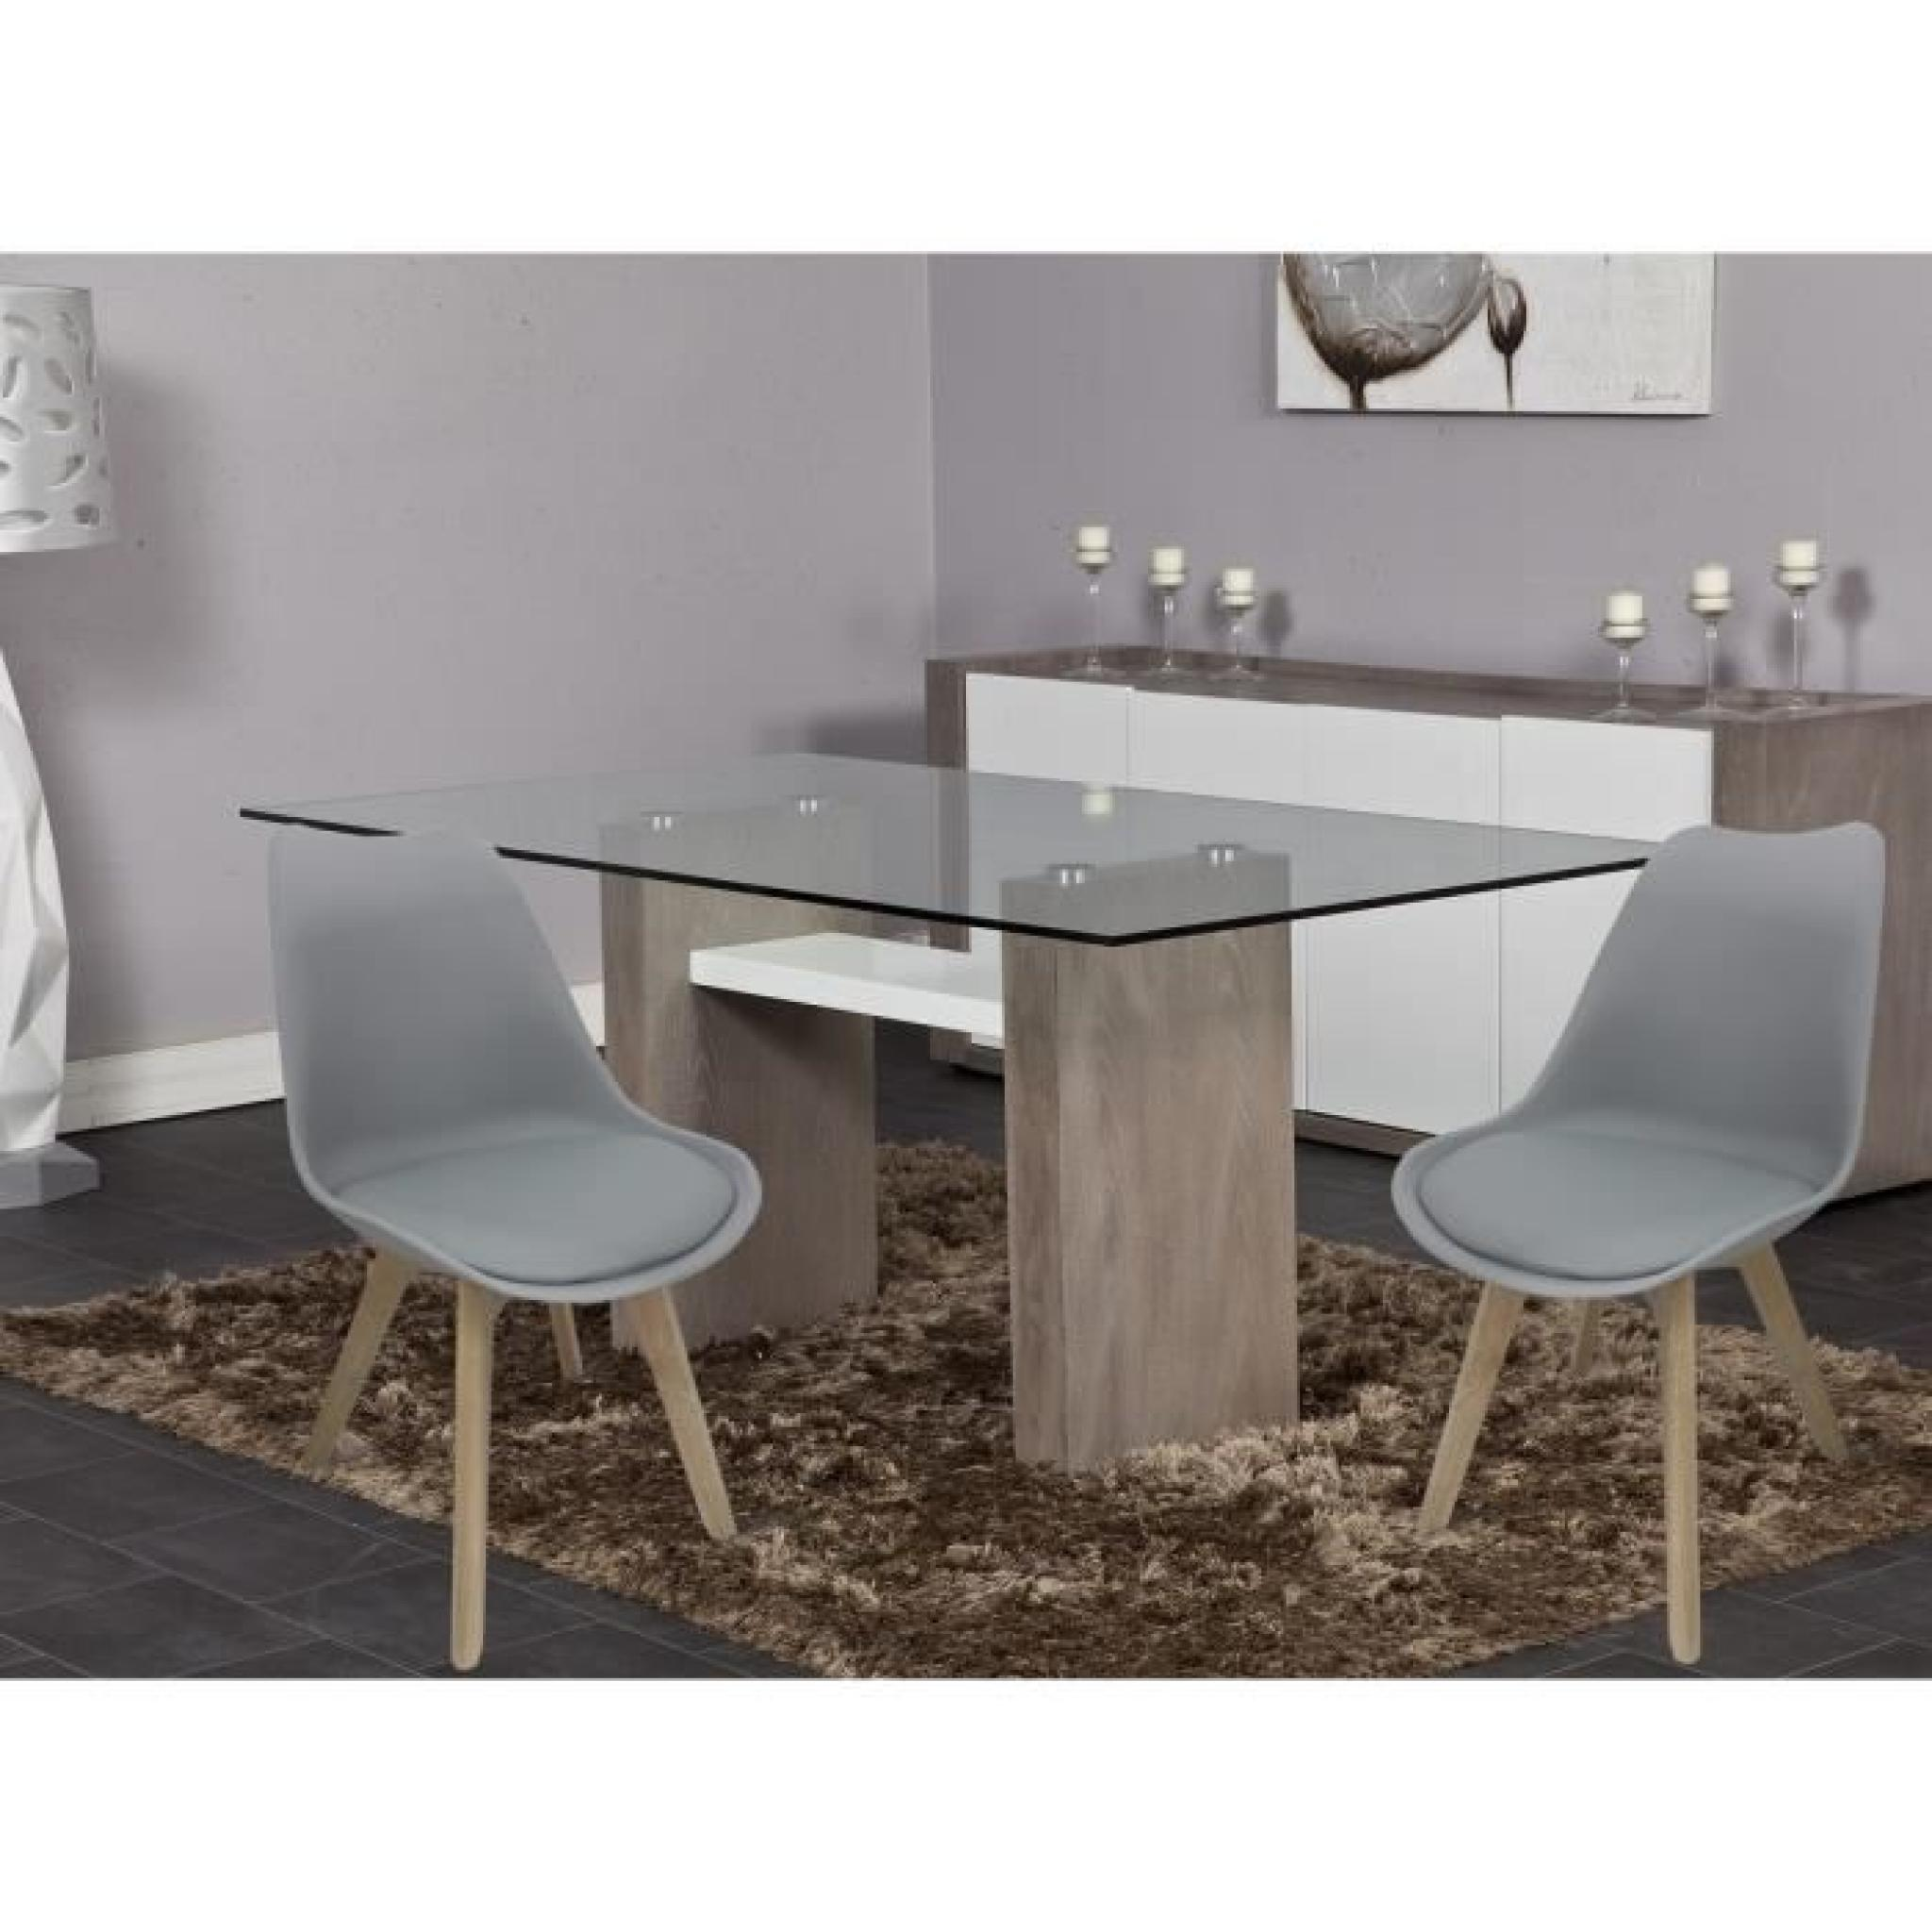 Table et chaise salle a manger pas cher valdiz for Chaise de table a manger